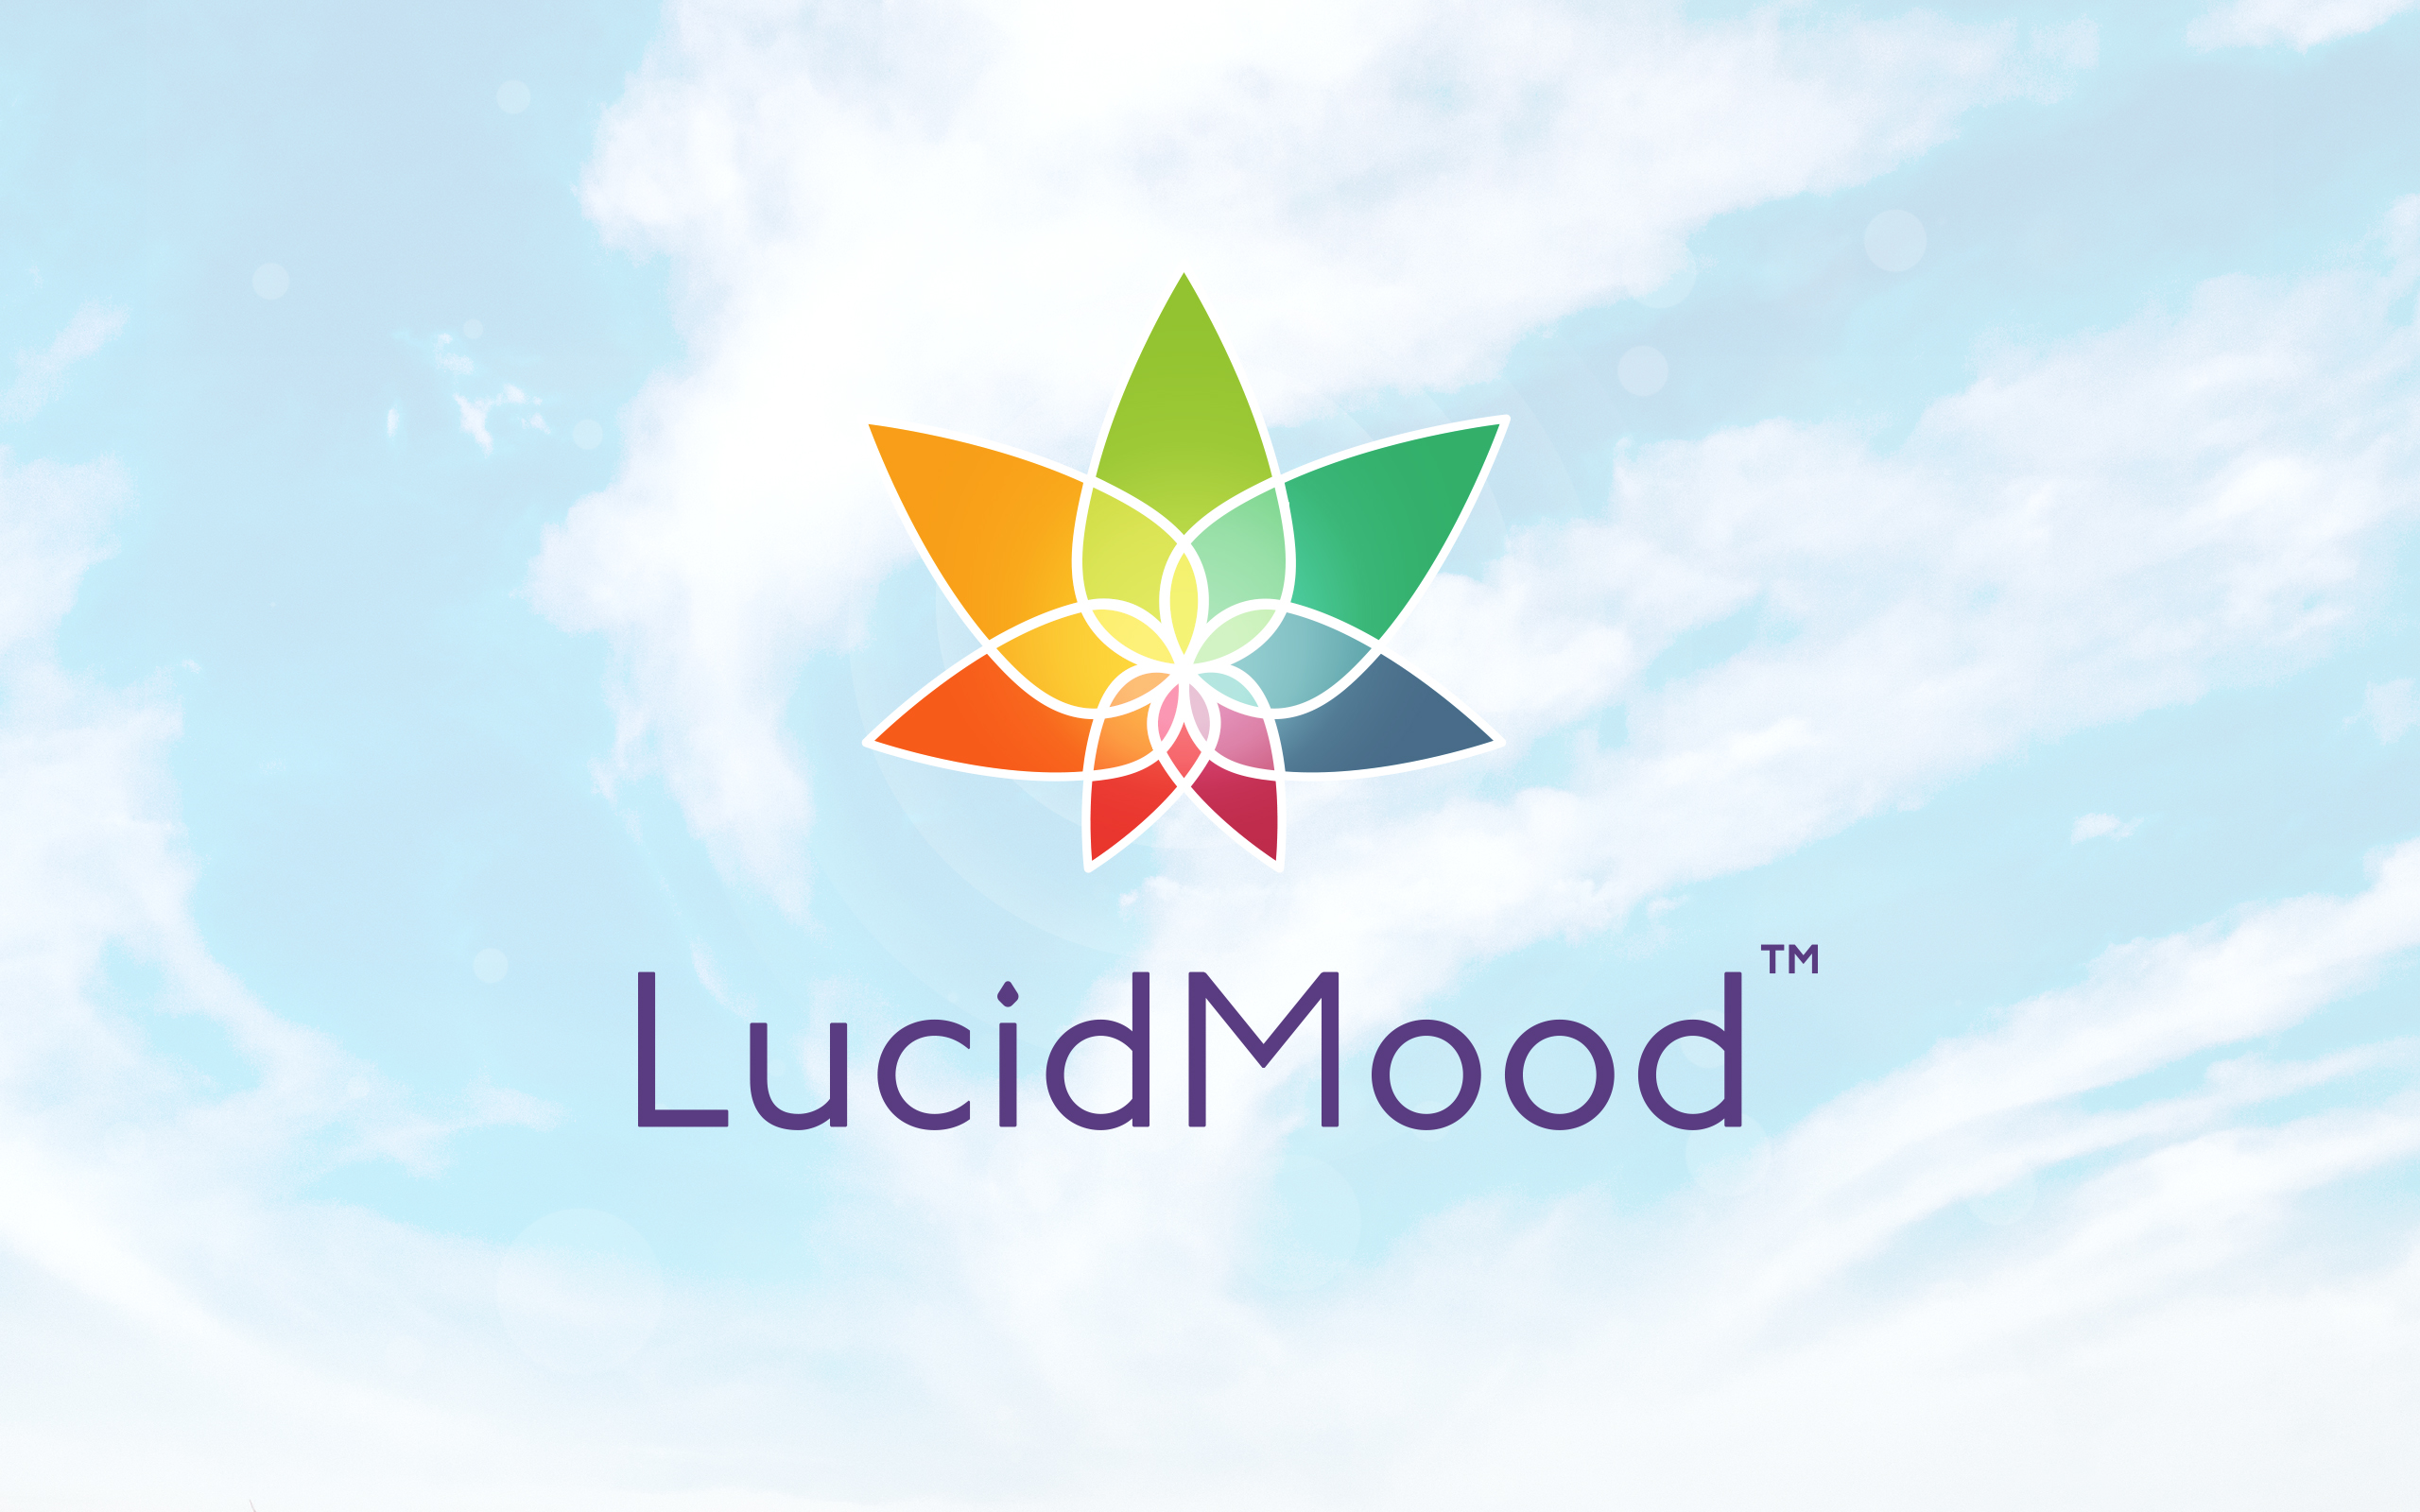 Gotham Green Partners Invests US $4 Million in Chooze Corp to Make LucidMood a National Cannabis Brand